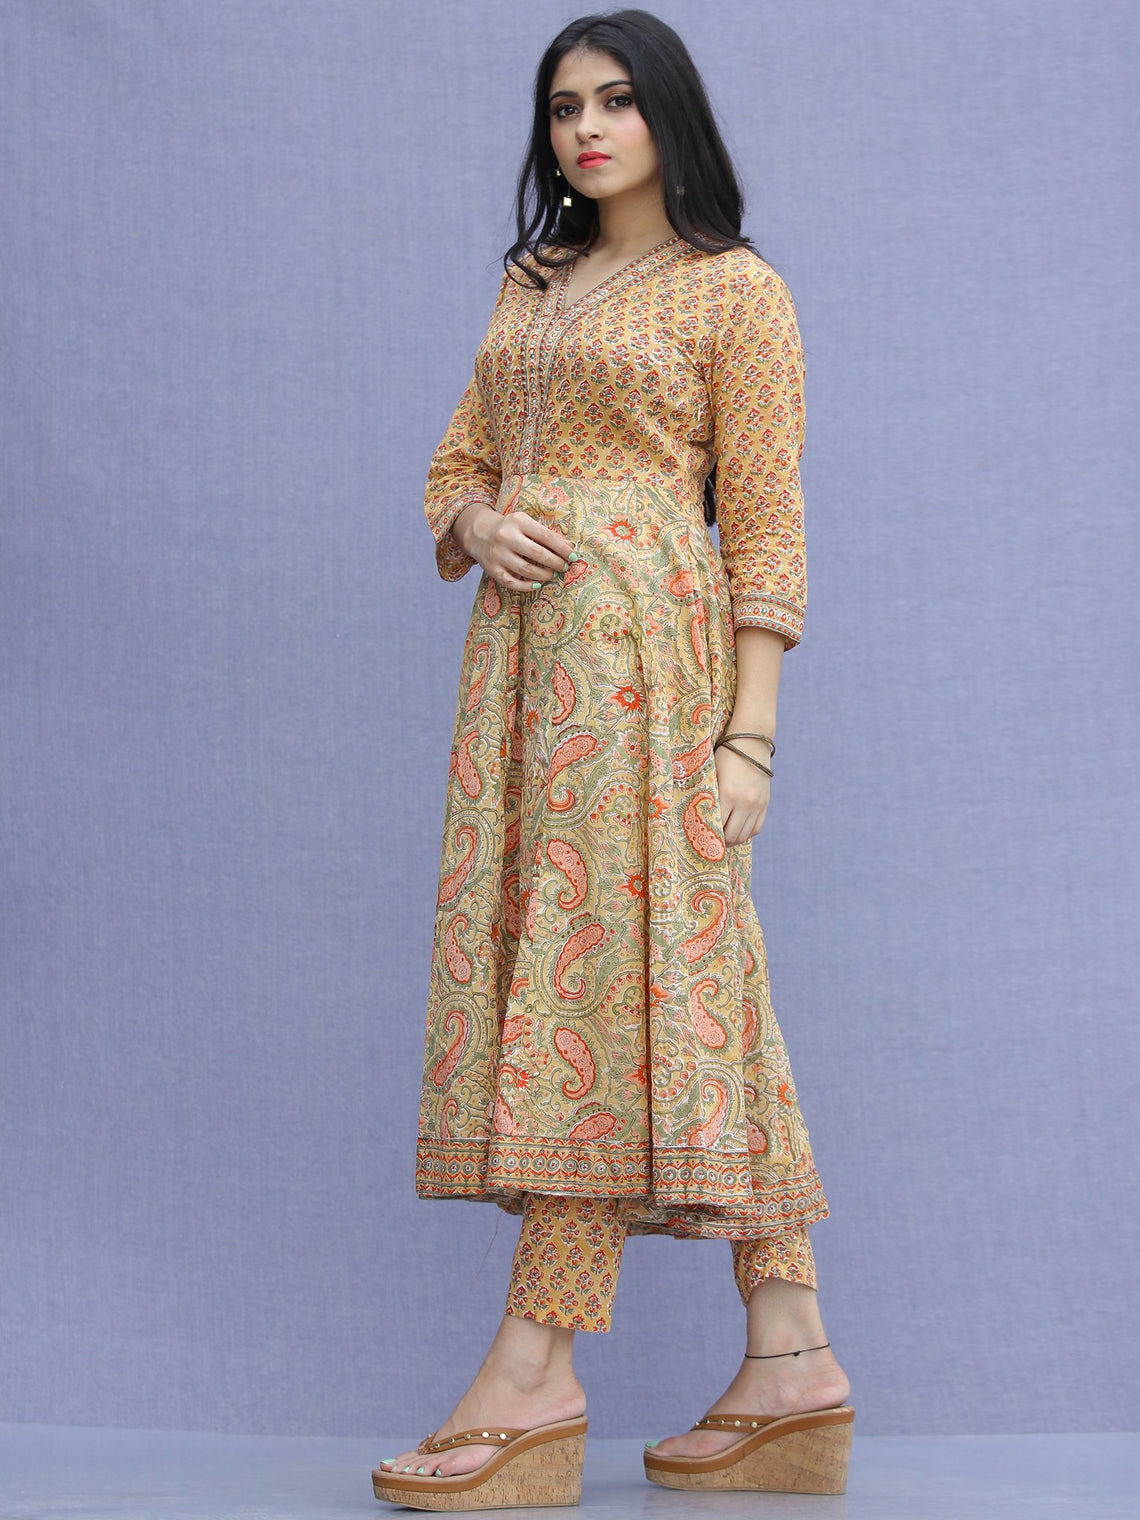 Jashn Zafraan - Set of Kurta Pants & Dupatta - KS33A2272D